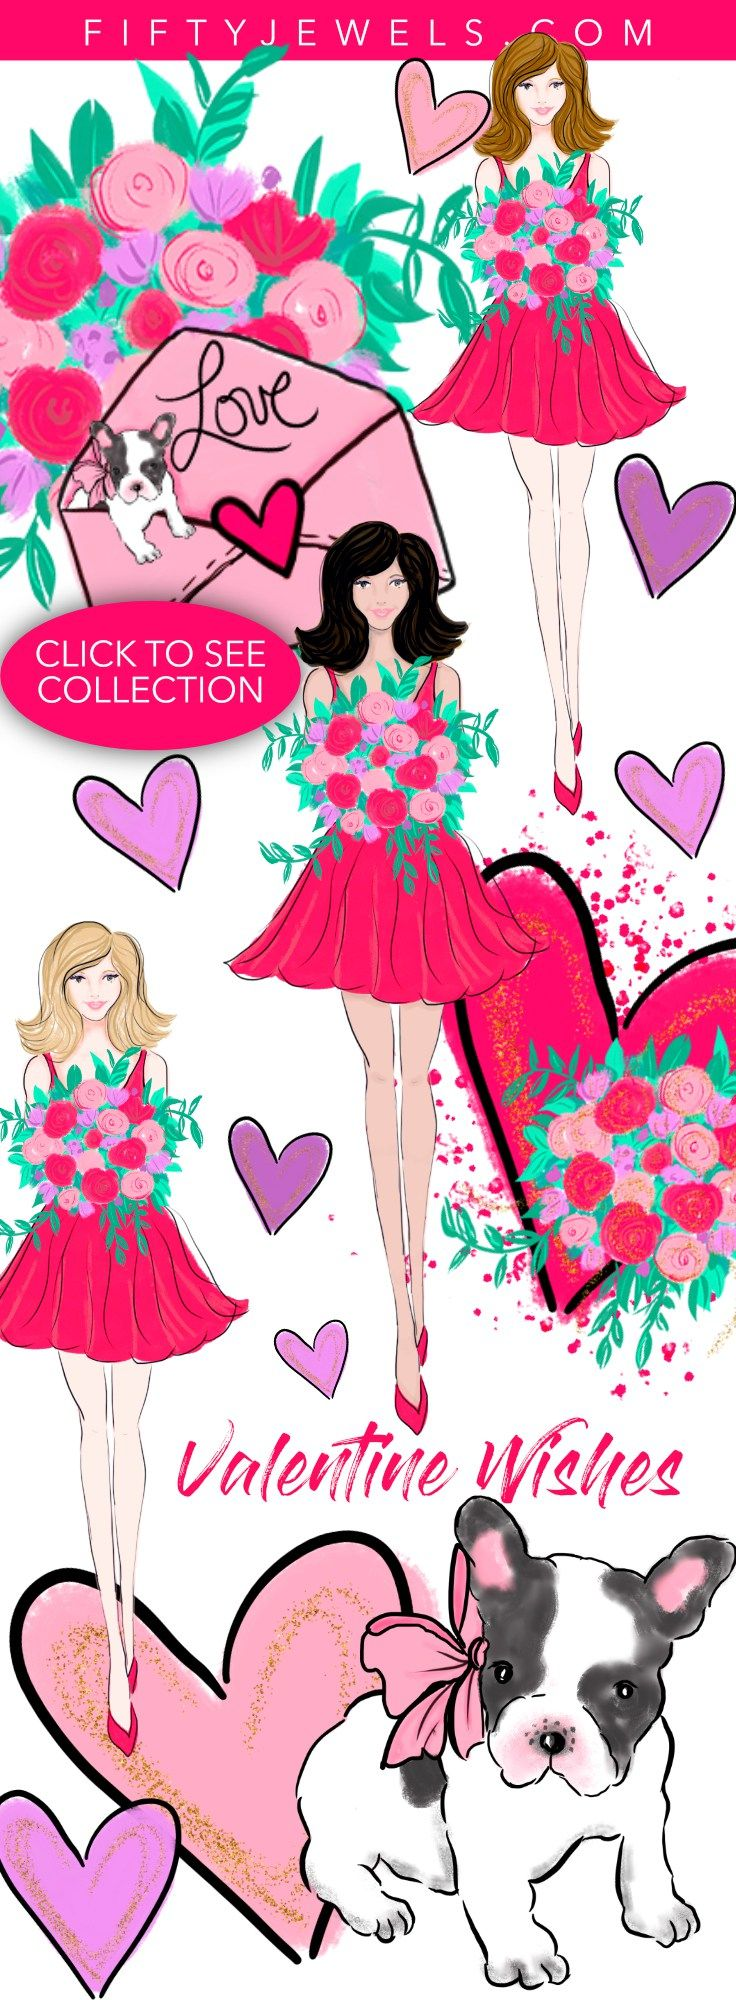 Fashion Clip Art | Watercolor Clipart | Valentine's Day | Celebrate your love of the sweetest holiday with this darling Valentine Designer Clip Art Collection! Click to see the entire kit. #fashion #clipart #valentinesday #hearts #love